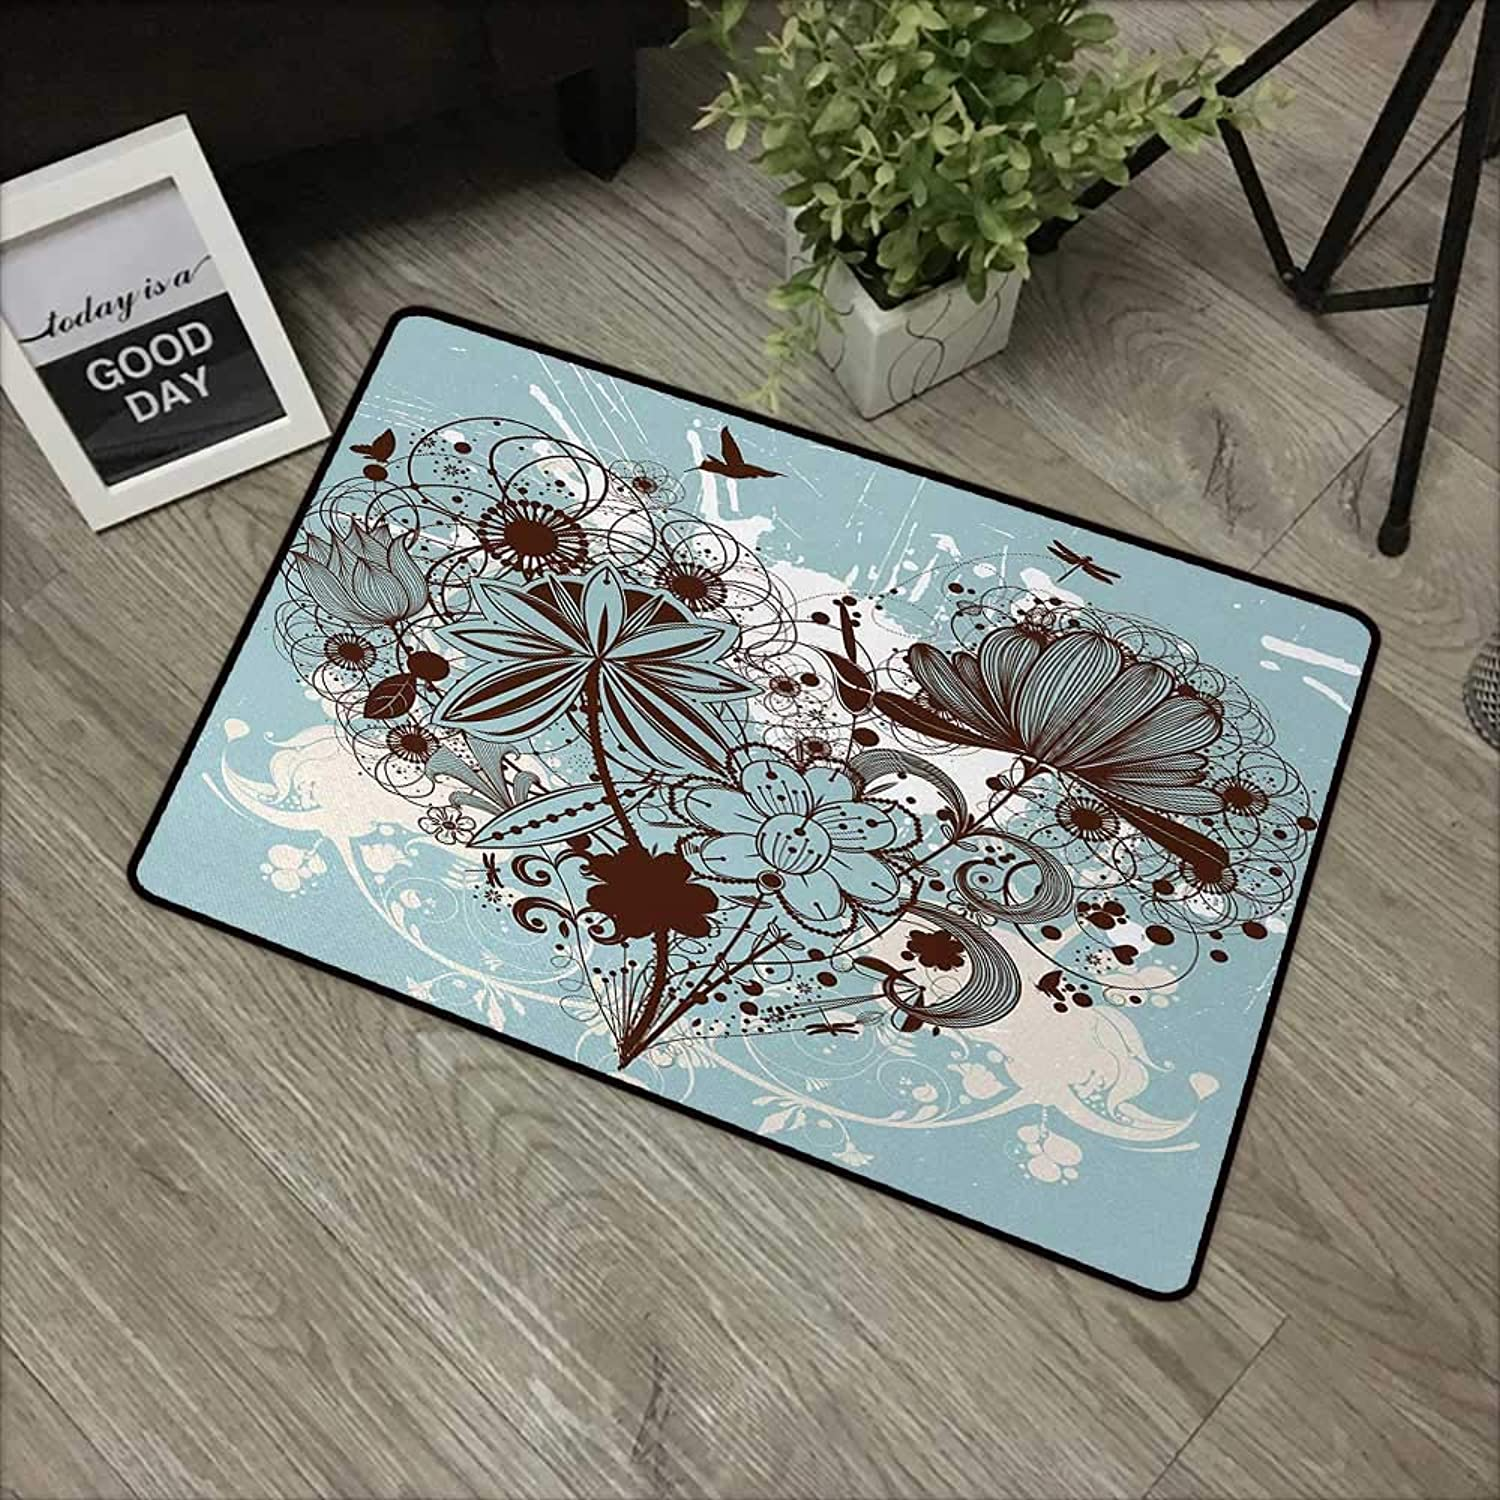 Interior Door mat W35 x L59 INCH Grunge,Murky Floral Dragonfly Background with Swirls and Petal Retro Graphic,Light bluee Chestnut Brown with Non-Slip Backing Door Mat Carpet